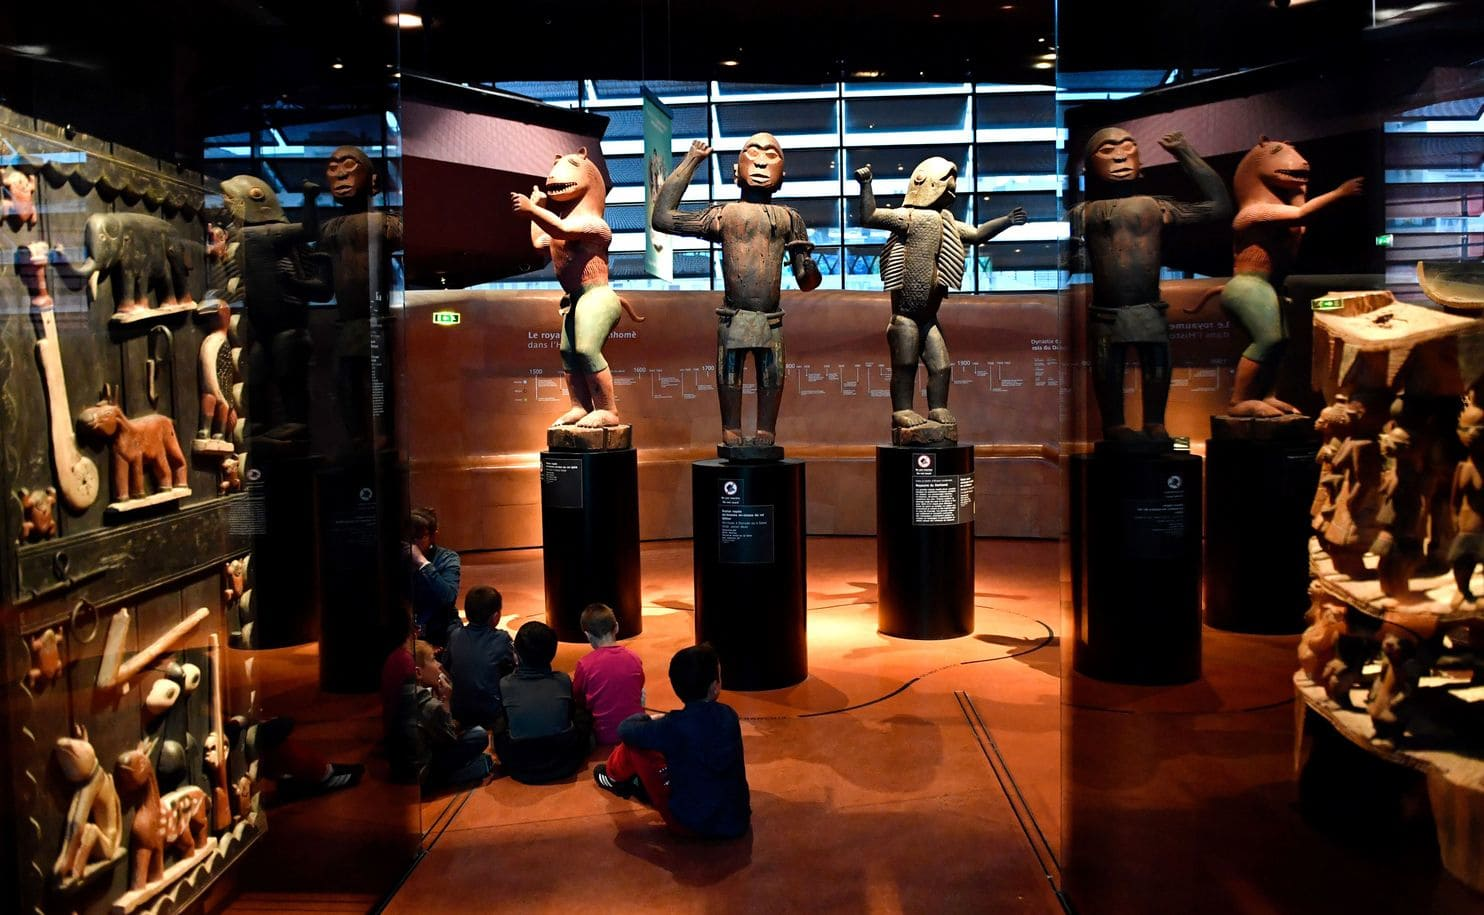 statues and other artifacts from the Kingdom of Dahomey on display at the Musée du Quai Branly in Paris